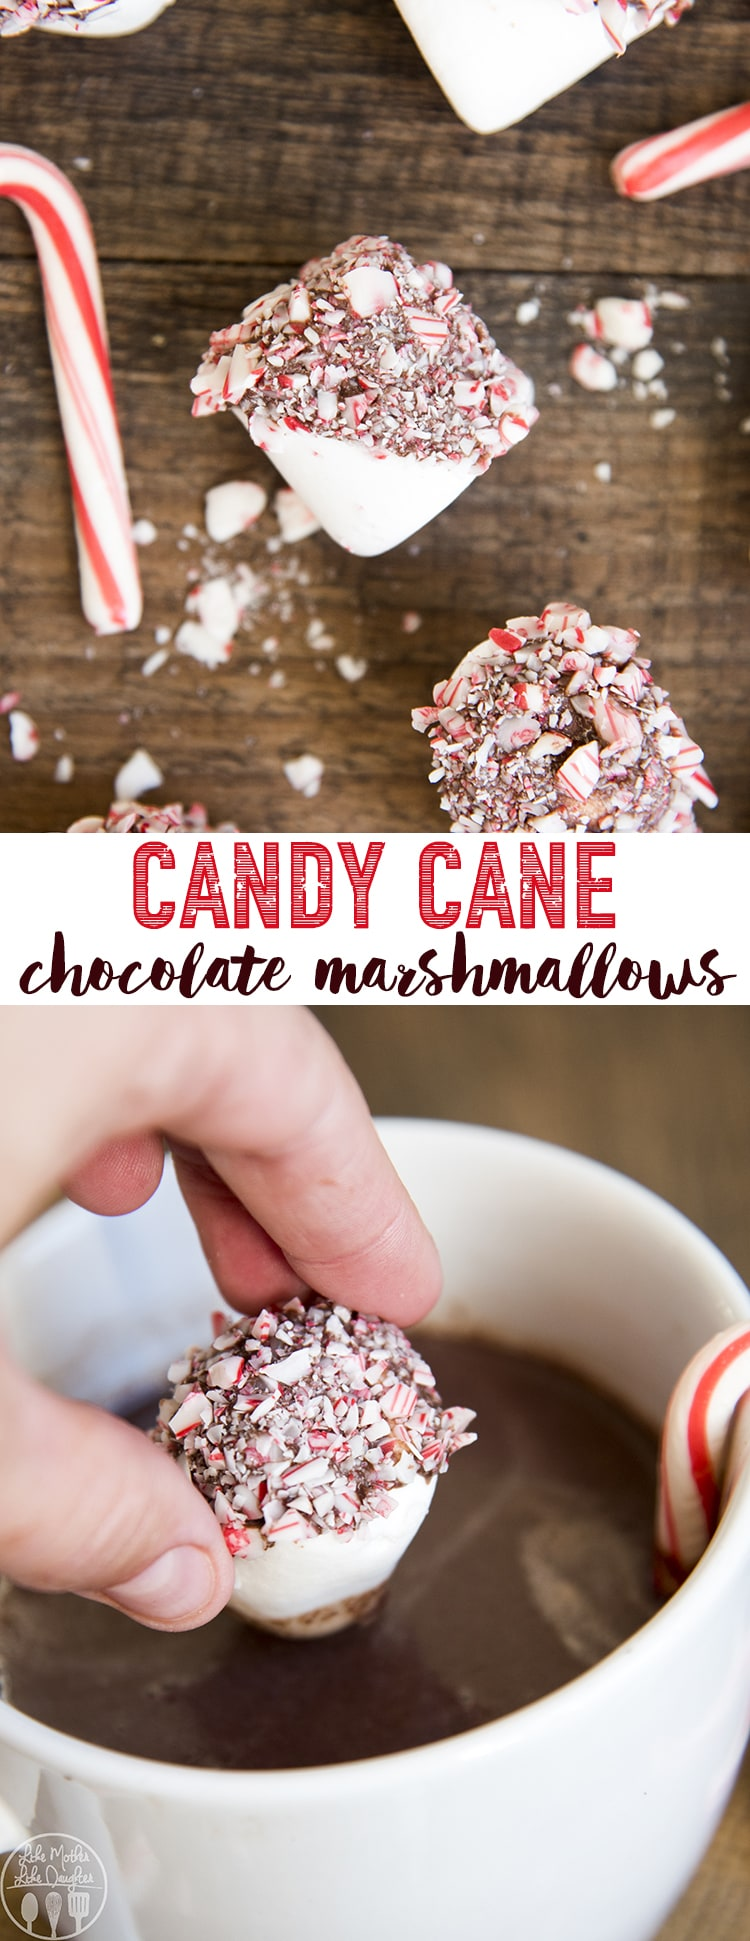 These peppermint chocolate marshmallows are chewy marshmallows dipped in melted chocolate and covered in crushed candy canes! Such a tasty holiday treat!!